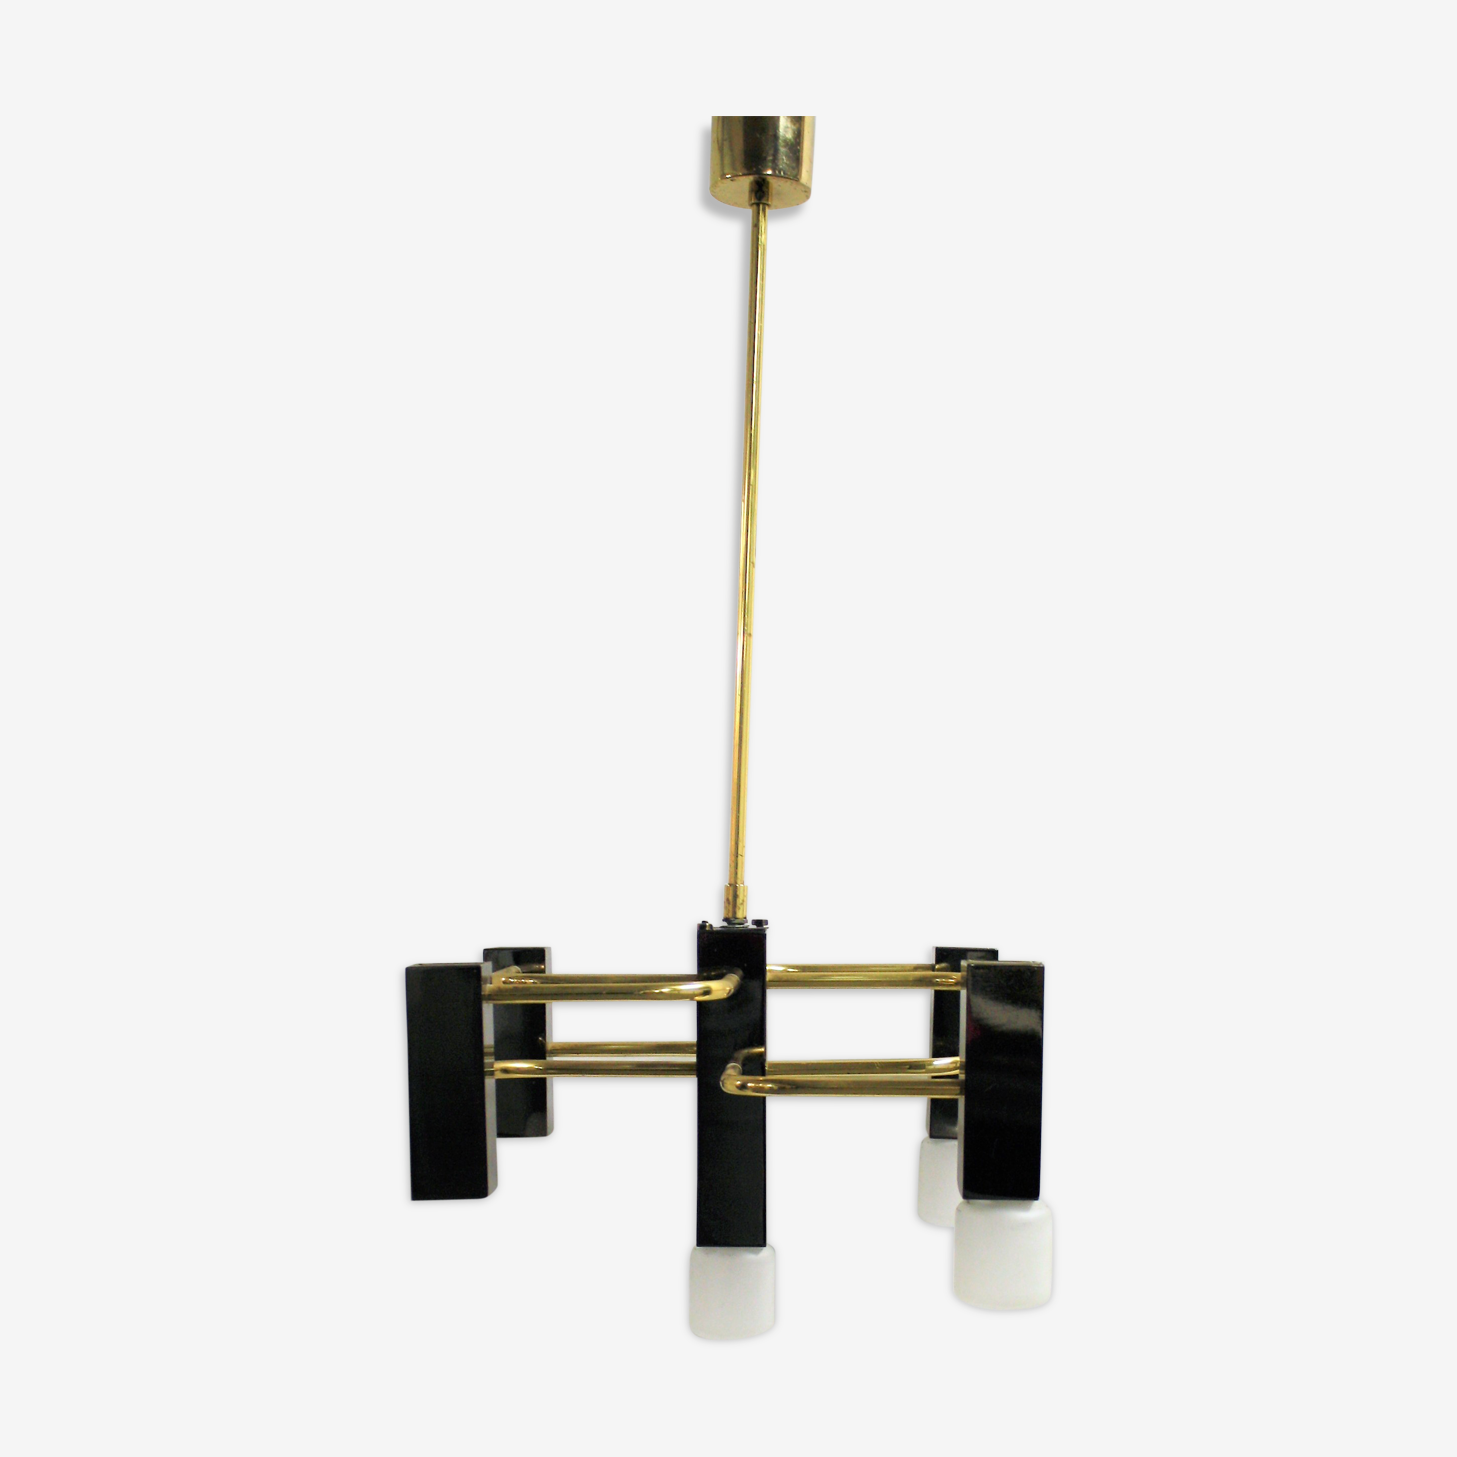 Brass chandelier by Maison Sciolari, 1960